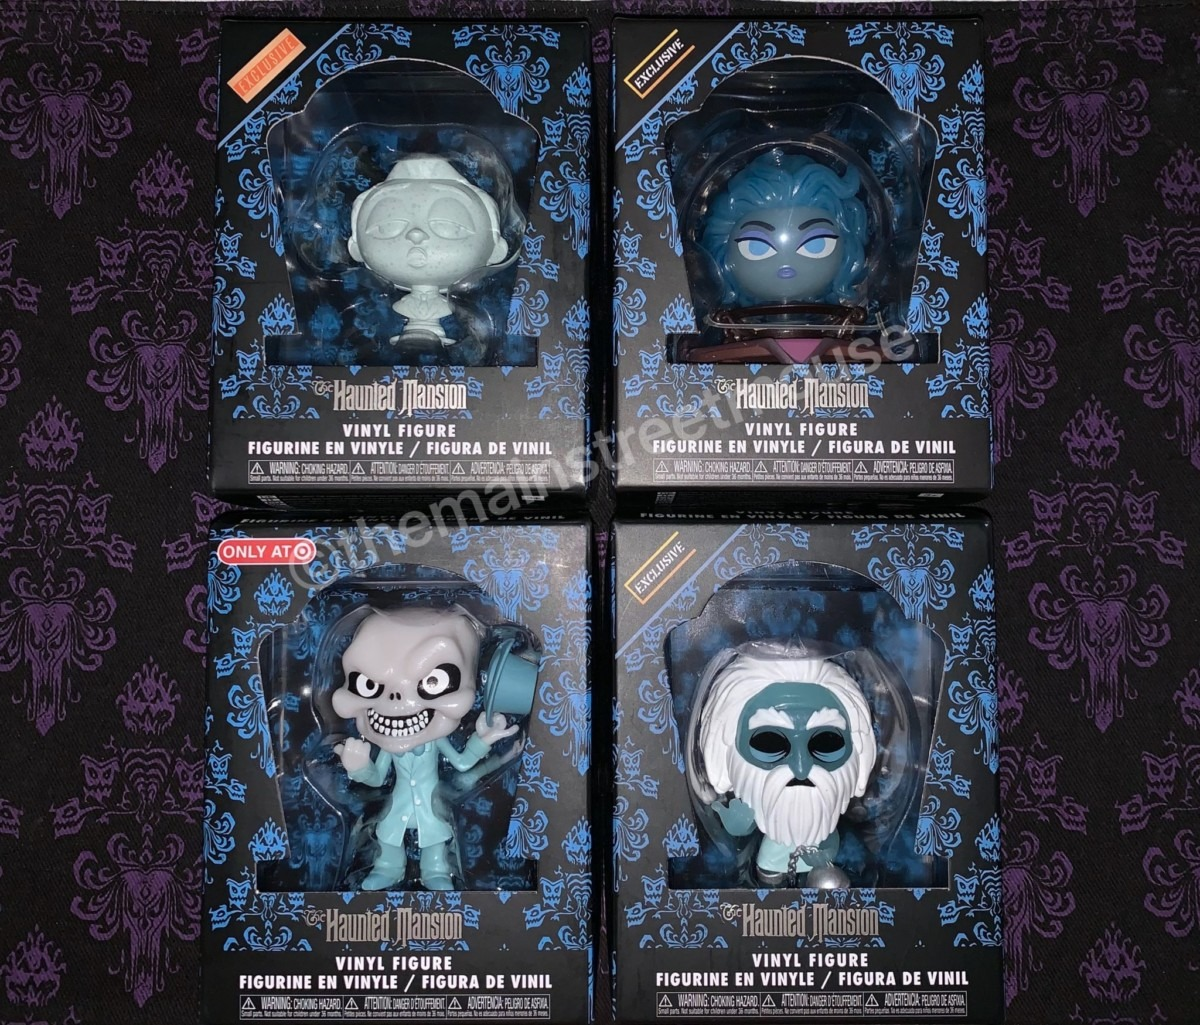 Haunted Mansion And Dapper Dan's Funko Items 3